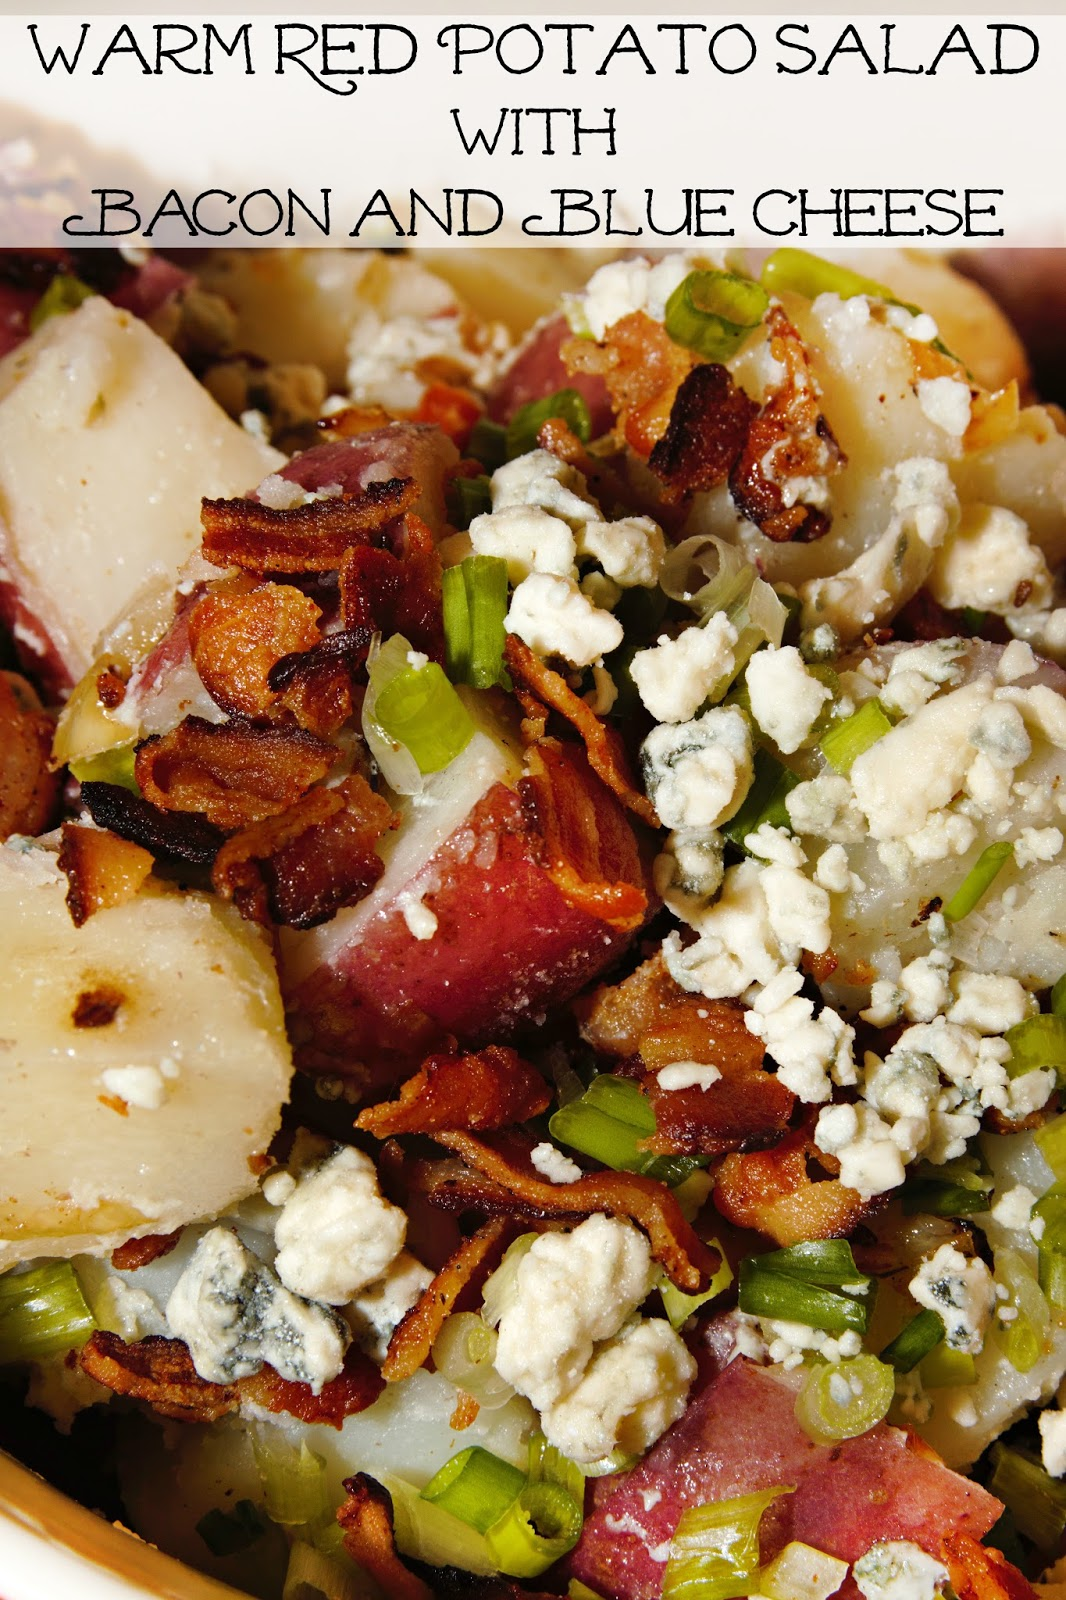 ... of Food: 10 Mouthwatering Holiday Potato Side Dishes and Appetizers